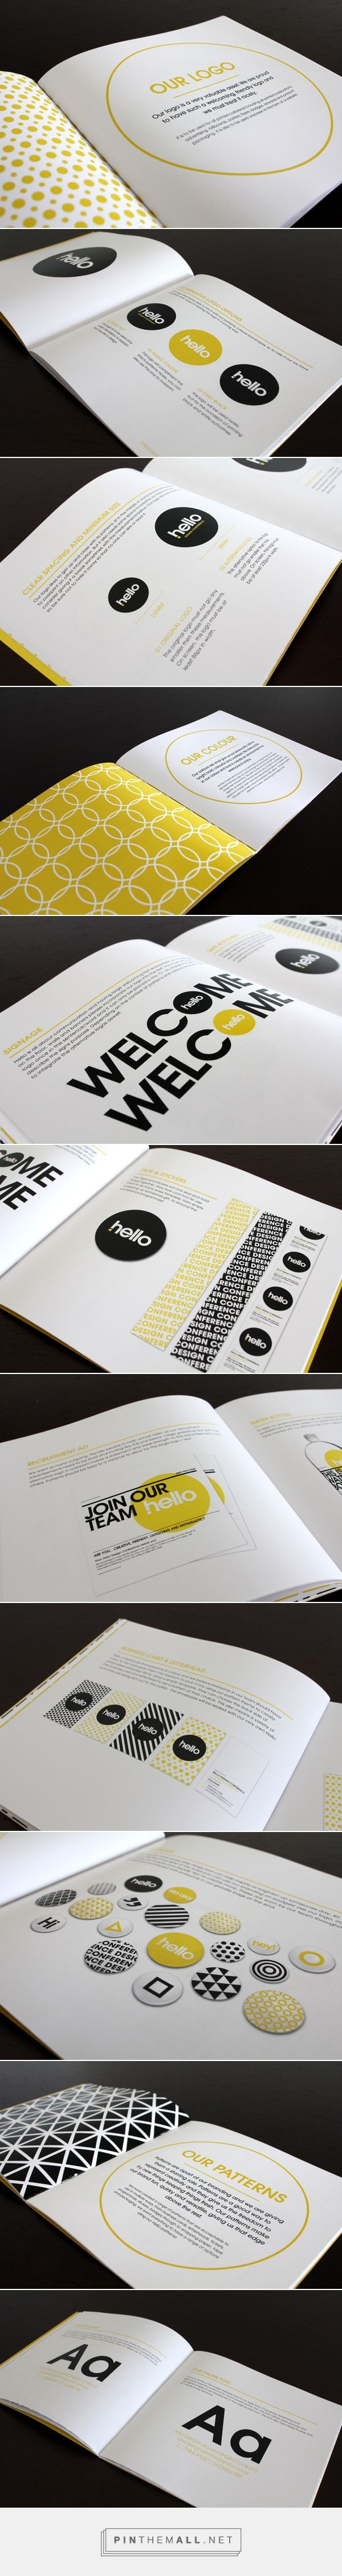 Hello Design Conference Brand Standards Manual                                                                                                                                                                                 More